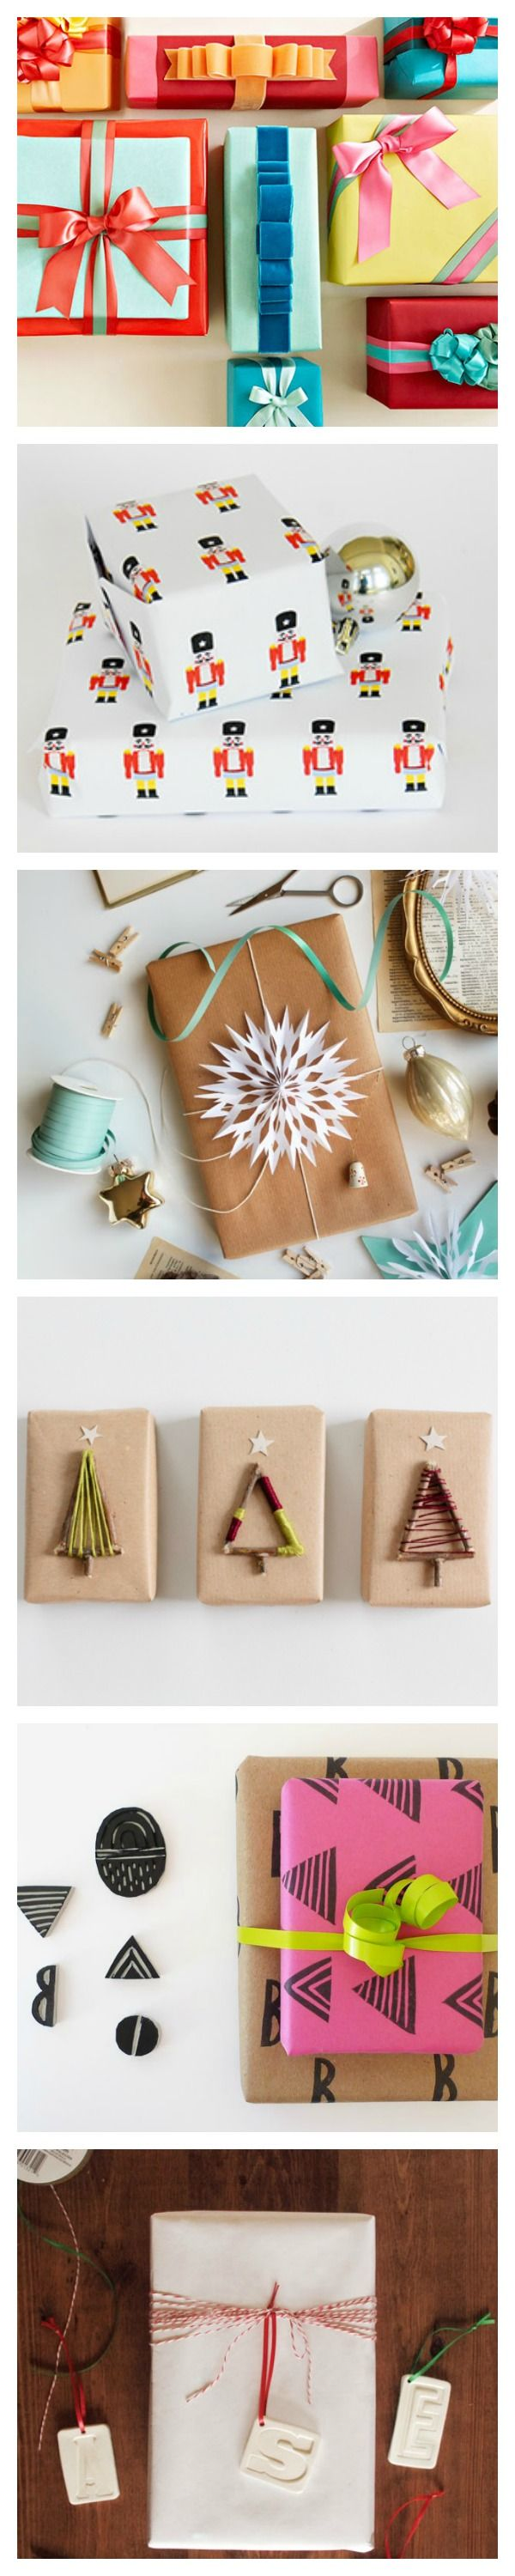 Here Are Some Fun Gift Wrapping Ideas!